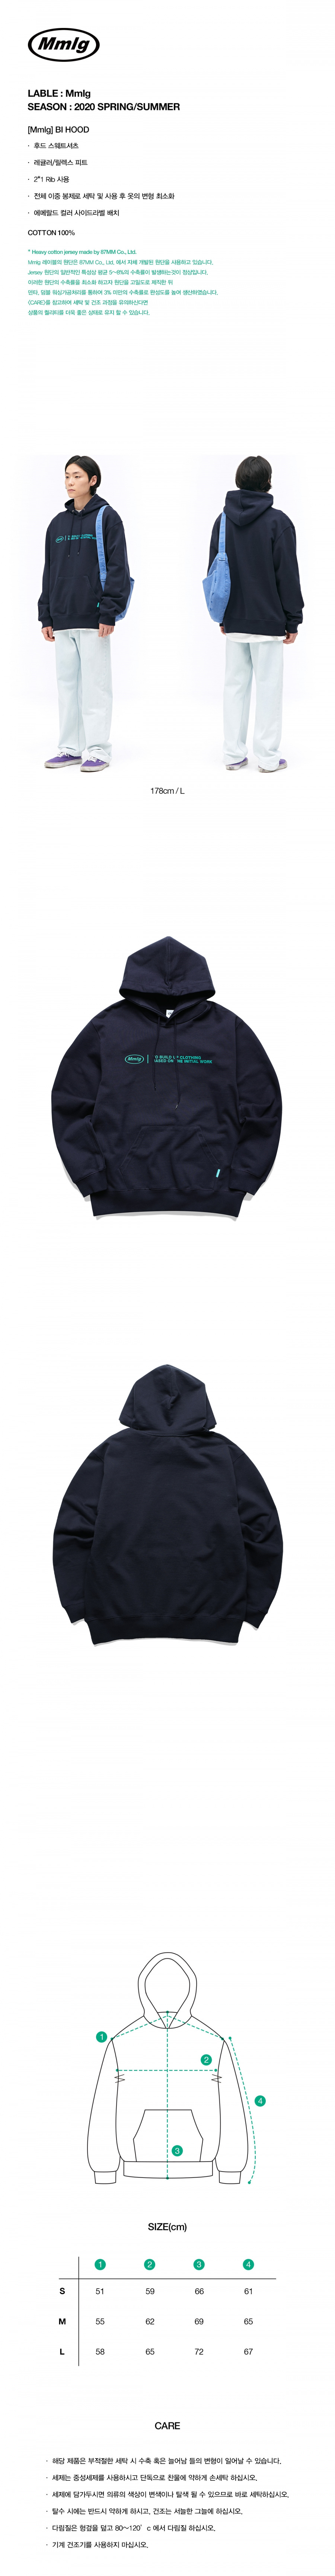 엠엠엘지(MMLG) [Mmlg] BI HOOD (PURPLE NAVY)